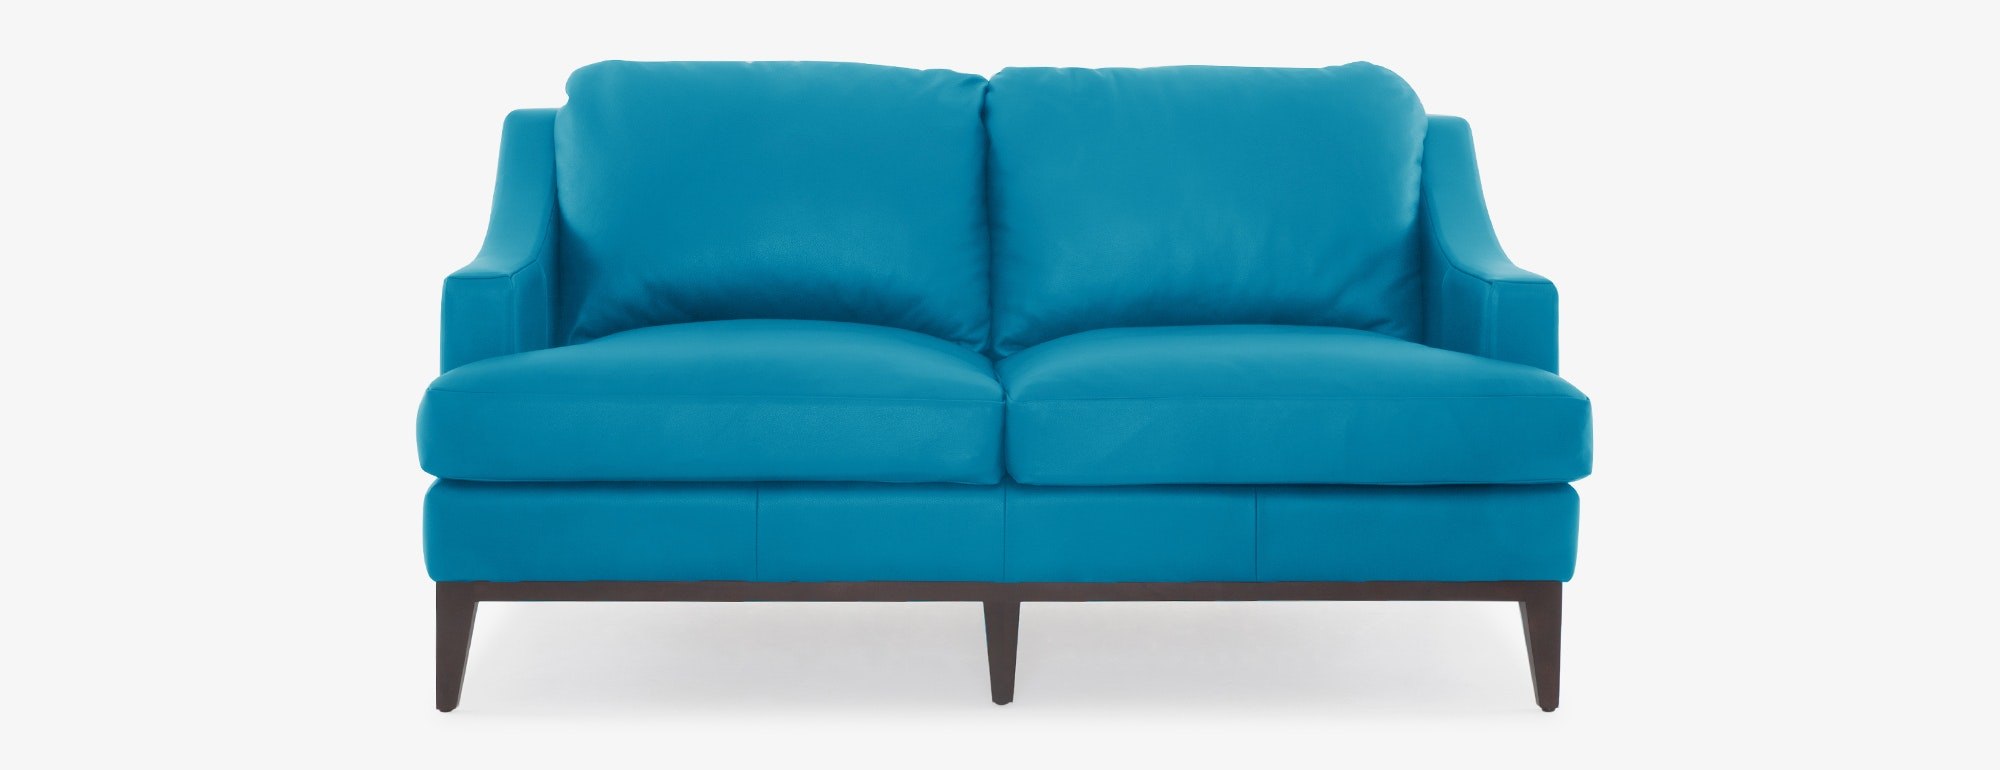 Sofa set with low price list the image for Average cost of sofa